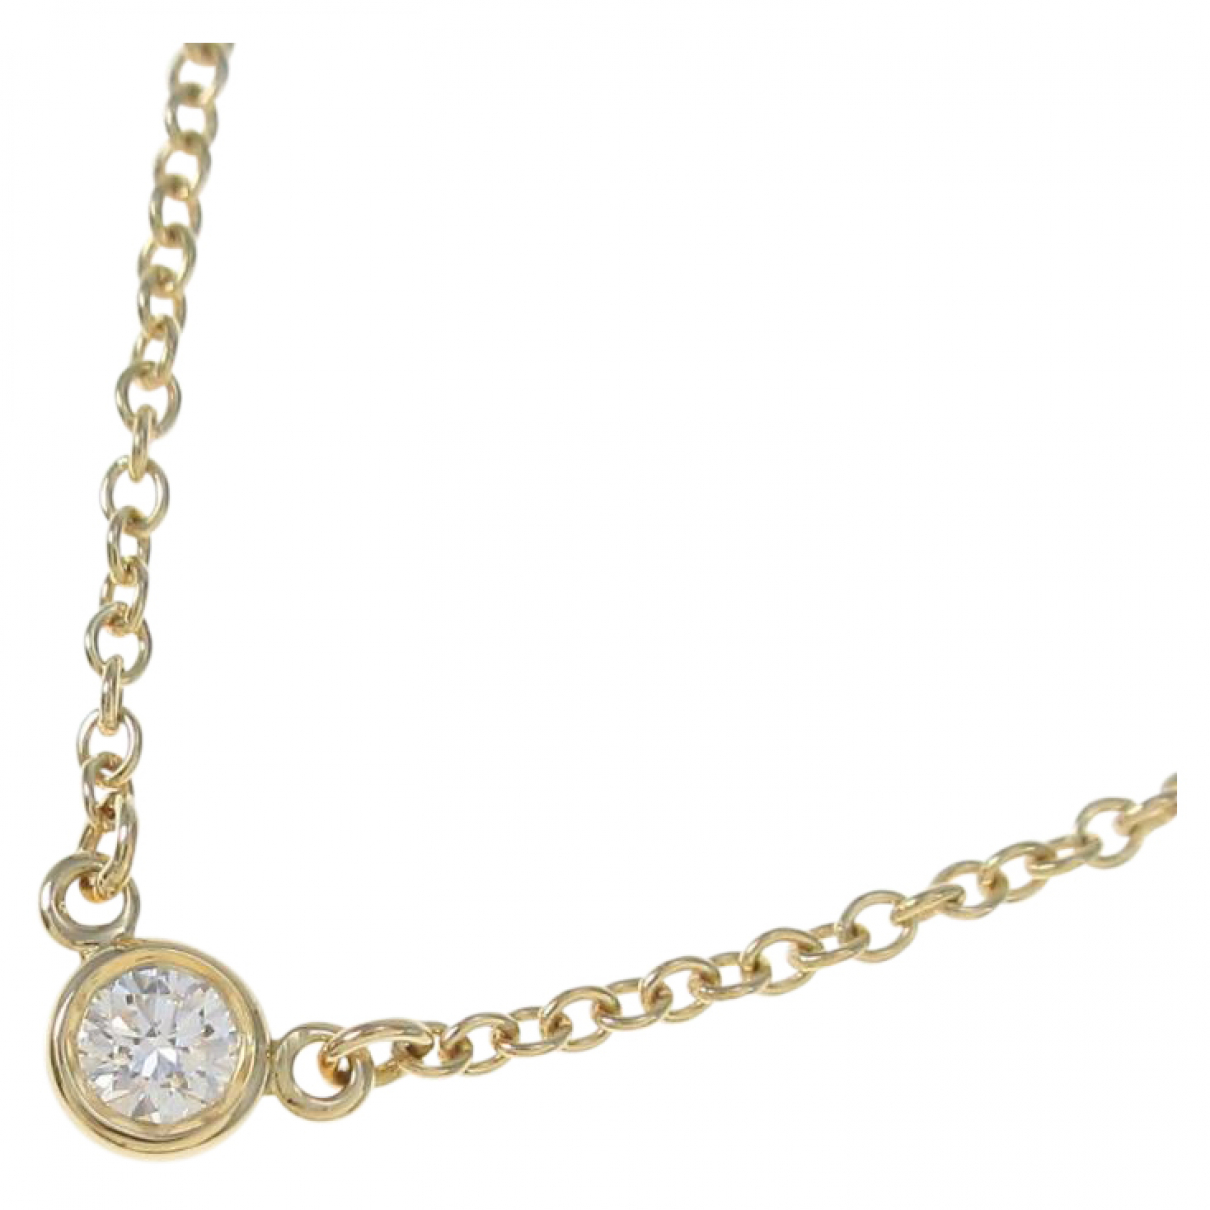 Tiffany & Co \N Kette in  Gold Gelbgold